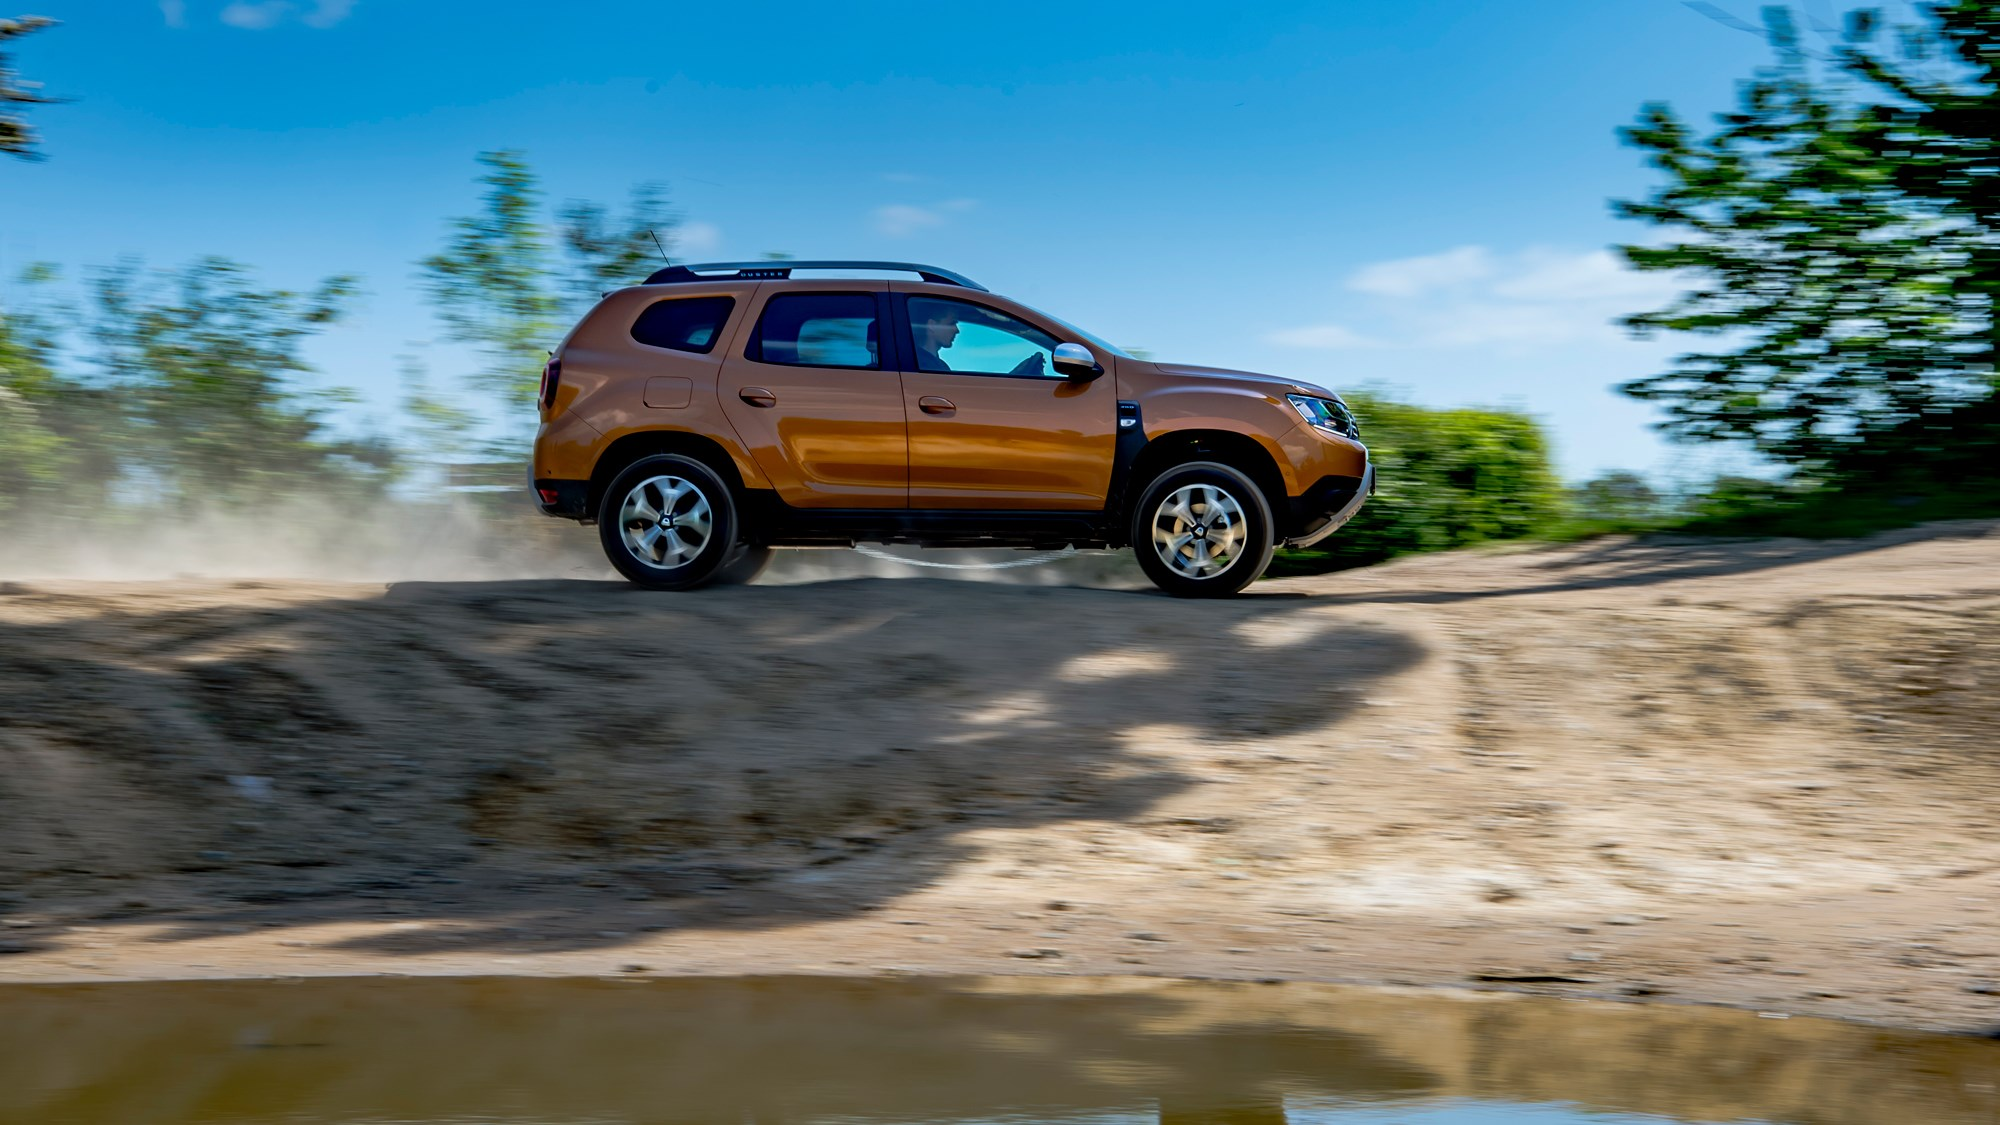 Dacia Duster Overland >> New Dacia Duster review: the budget SUV driven by CAR Magazine